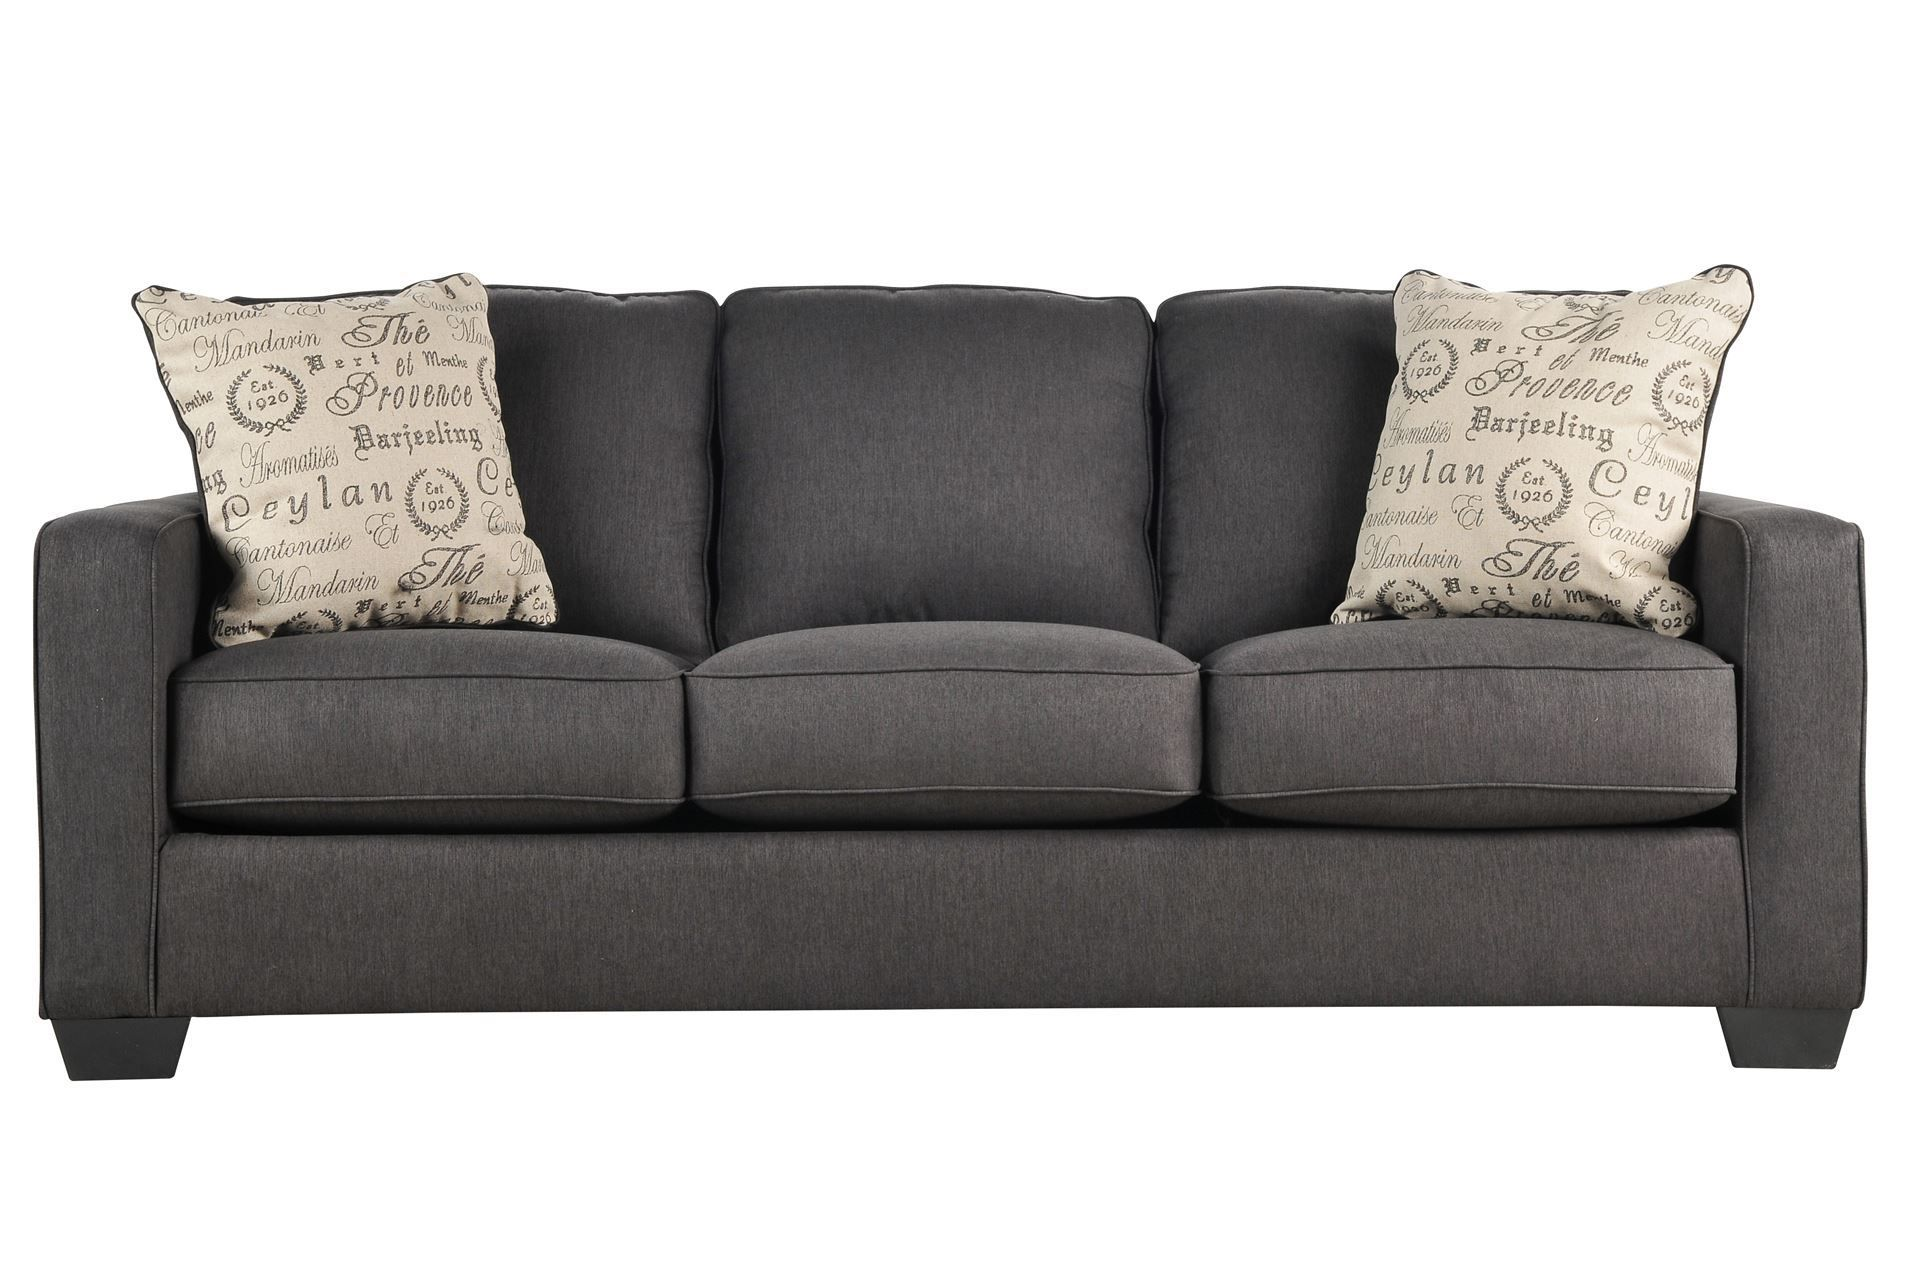 affordable comfortable sectional sofas sofa next day delivery london this was really and comes in a too